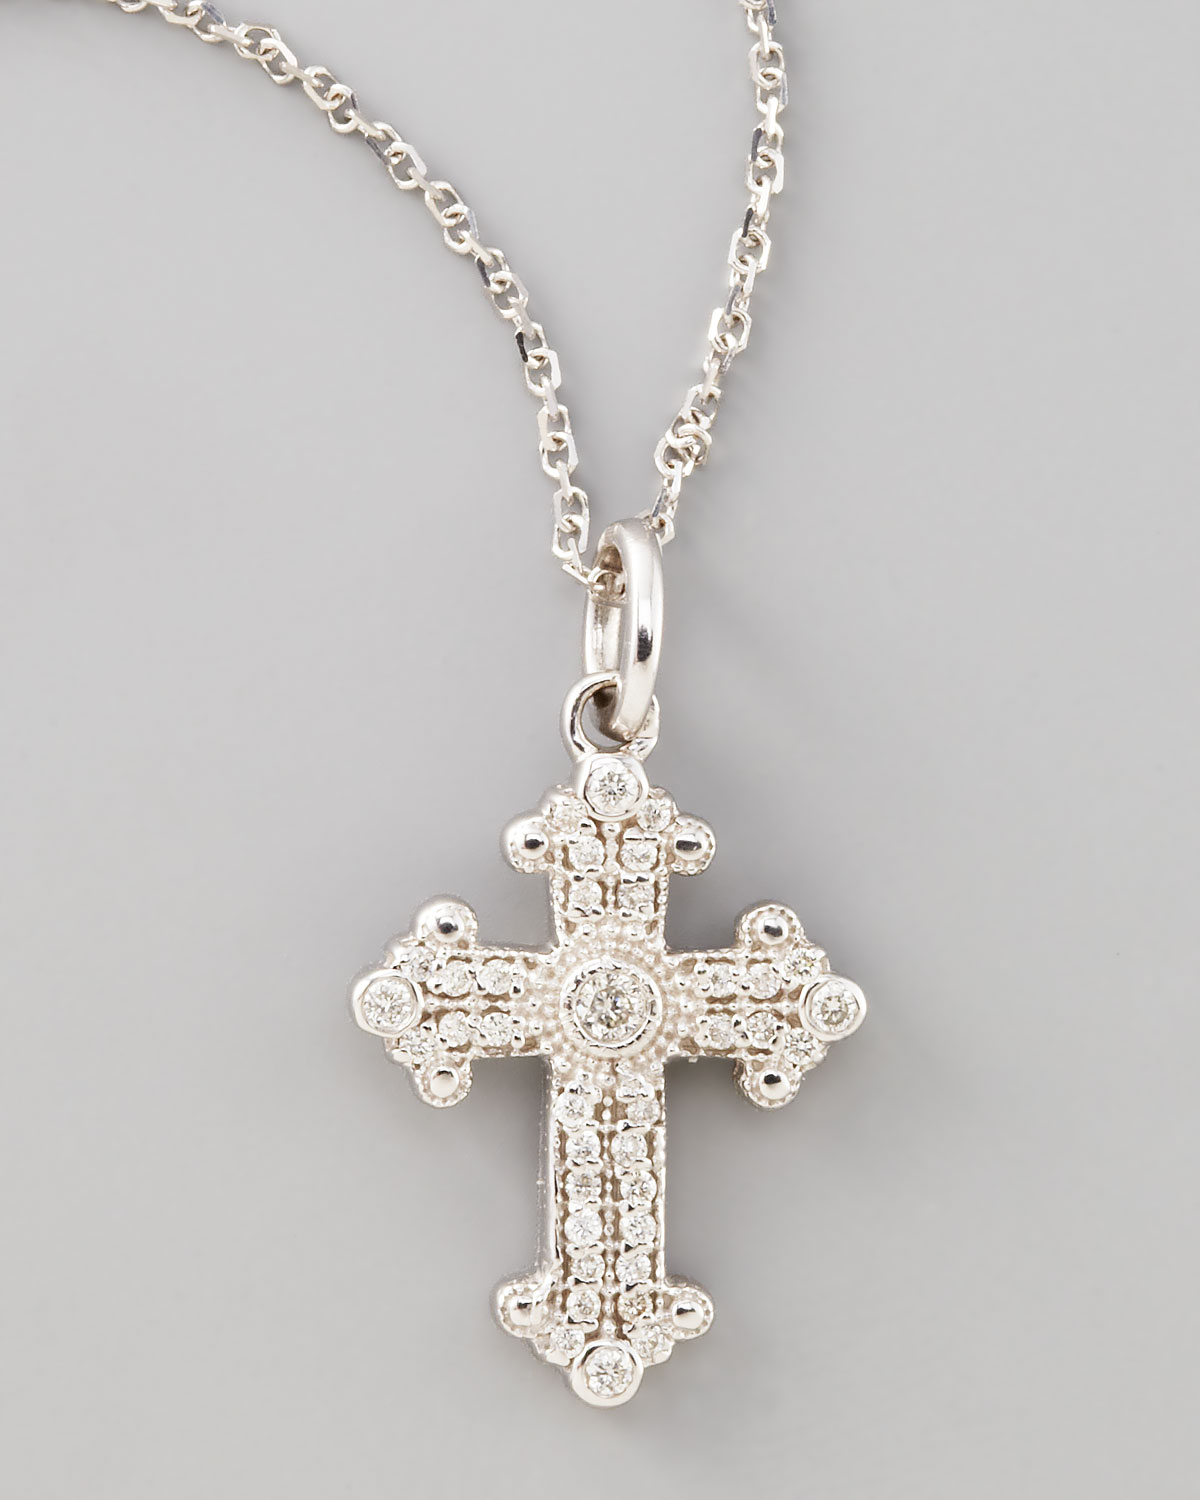 kc designs byzantine cross necklace white gold in metallic